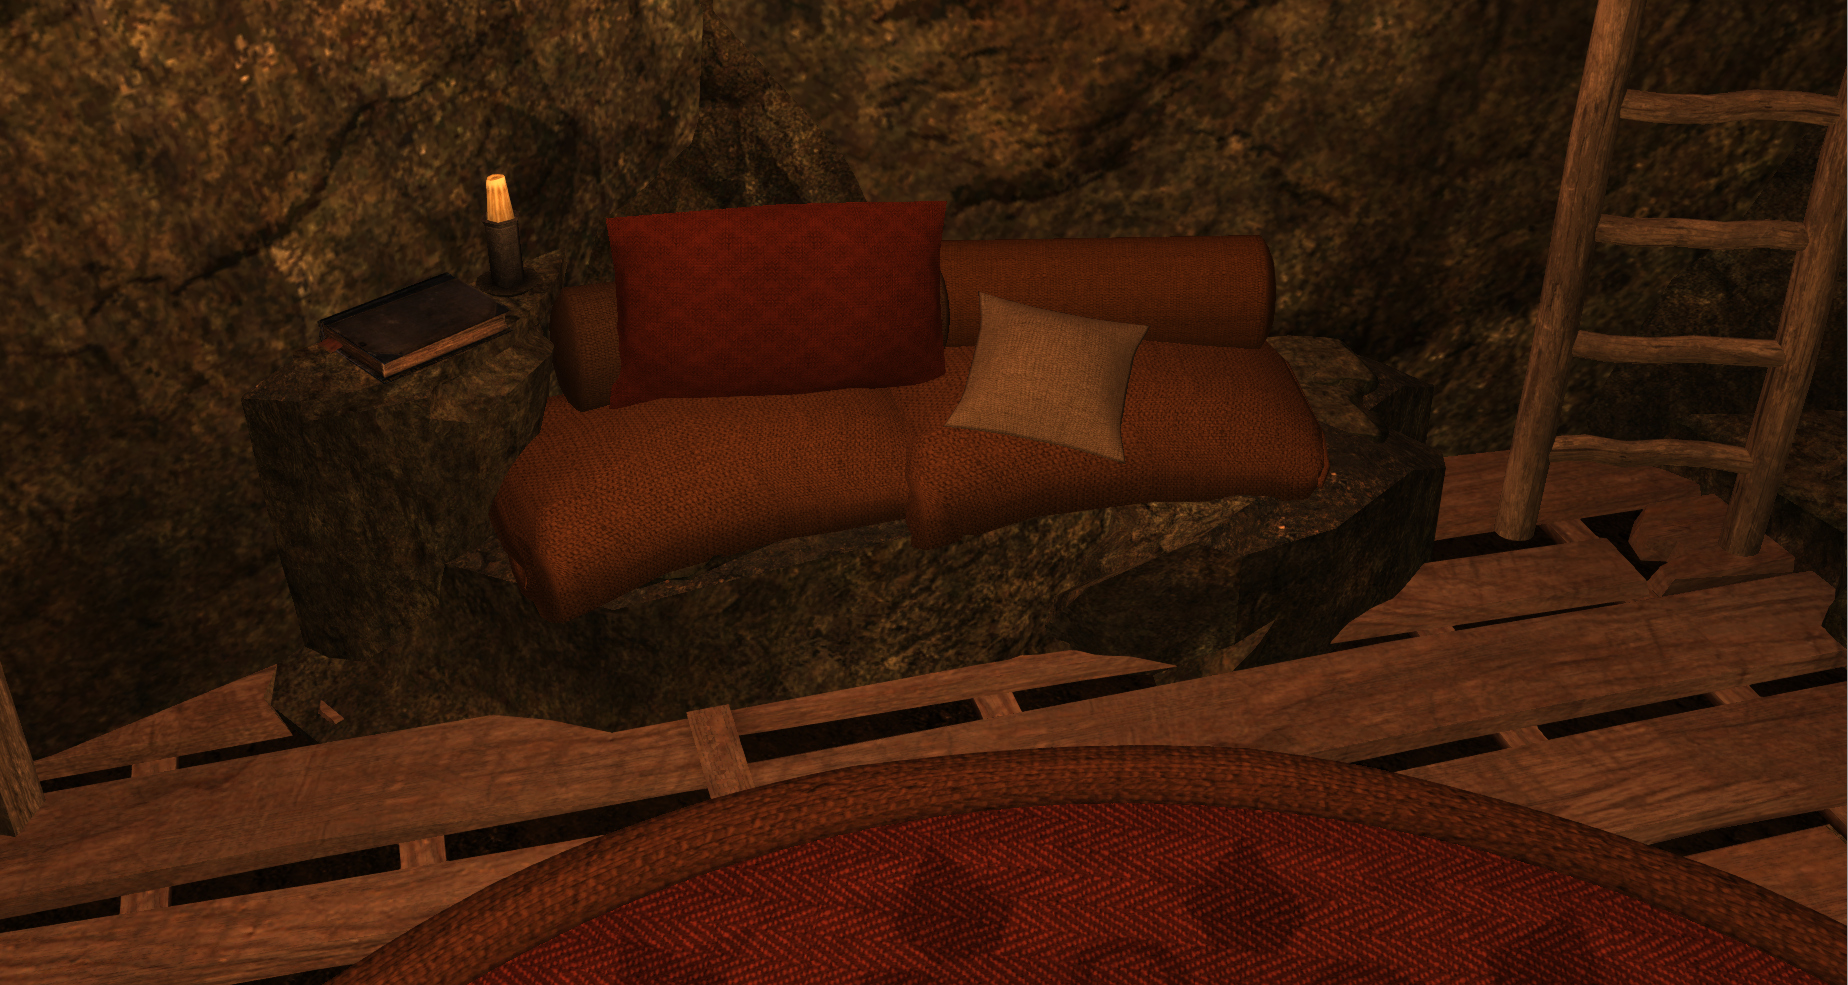 Asymmetric Stone Sofa At Skyrim Nexus